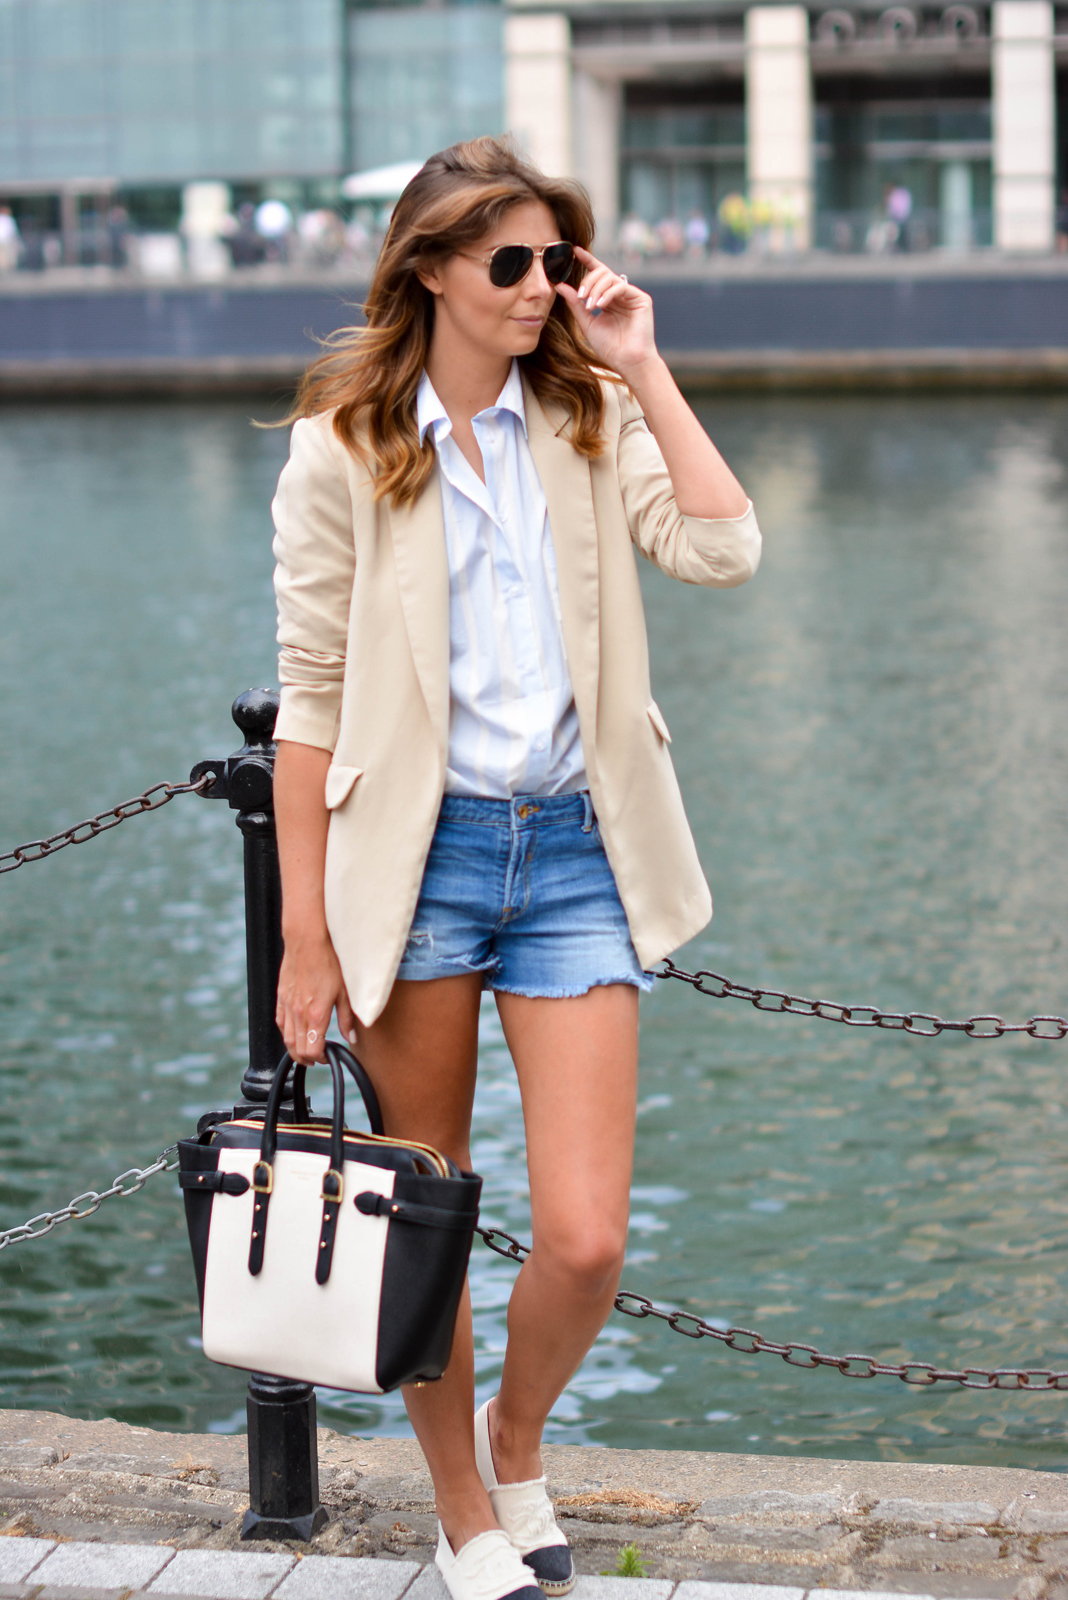 EJSTYLE - Beige long boyfriend blazer, blue stripe ASOS shirt, Denim shorts, Aspinal of London bag, gold aviator sunglasses, Chanel cream canvas espadrilles, summer ootd style